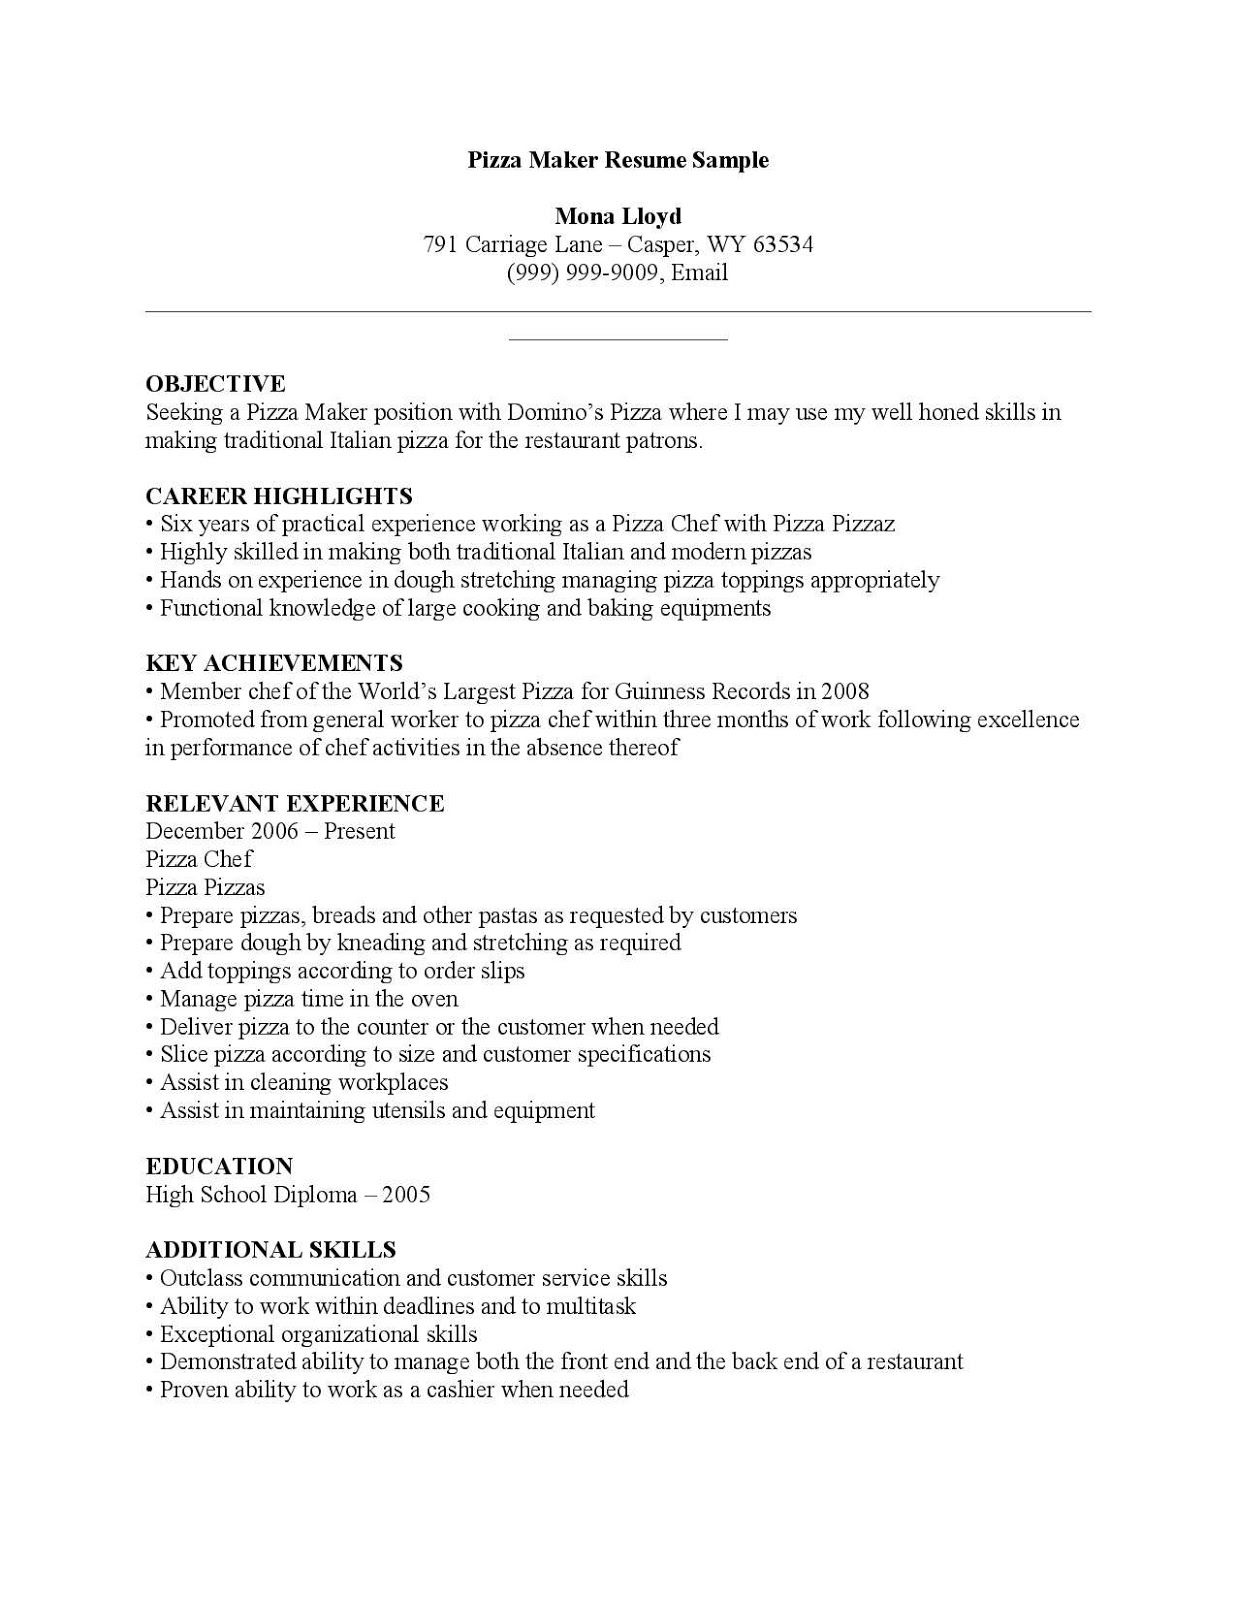 Best Resume Builder 2019 from i.pinimg.com